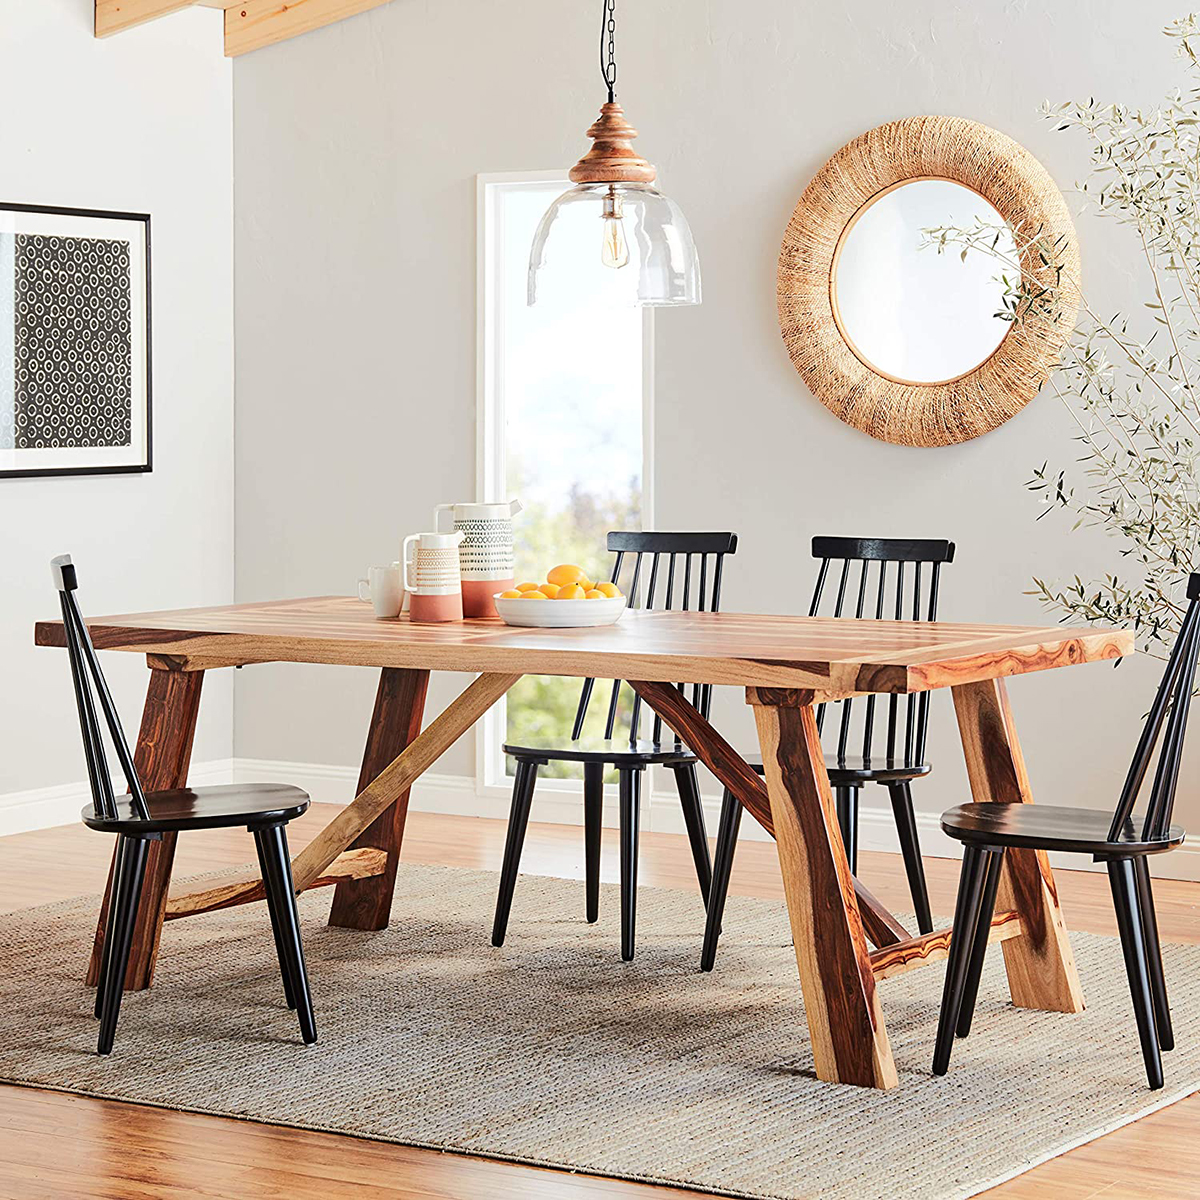 9 Farmhouse Dining Tables that are Overflowing with Rustic Charm